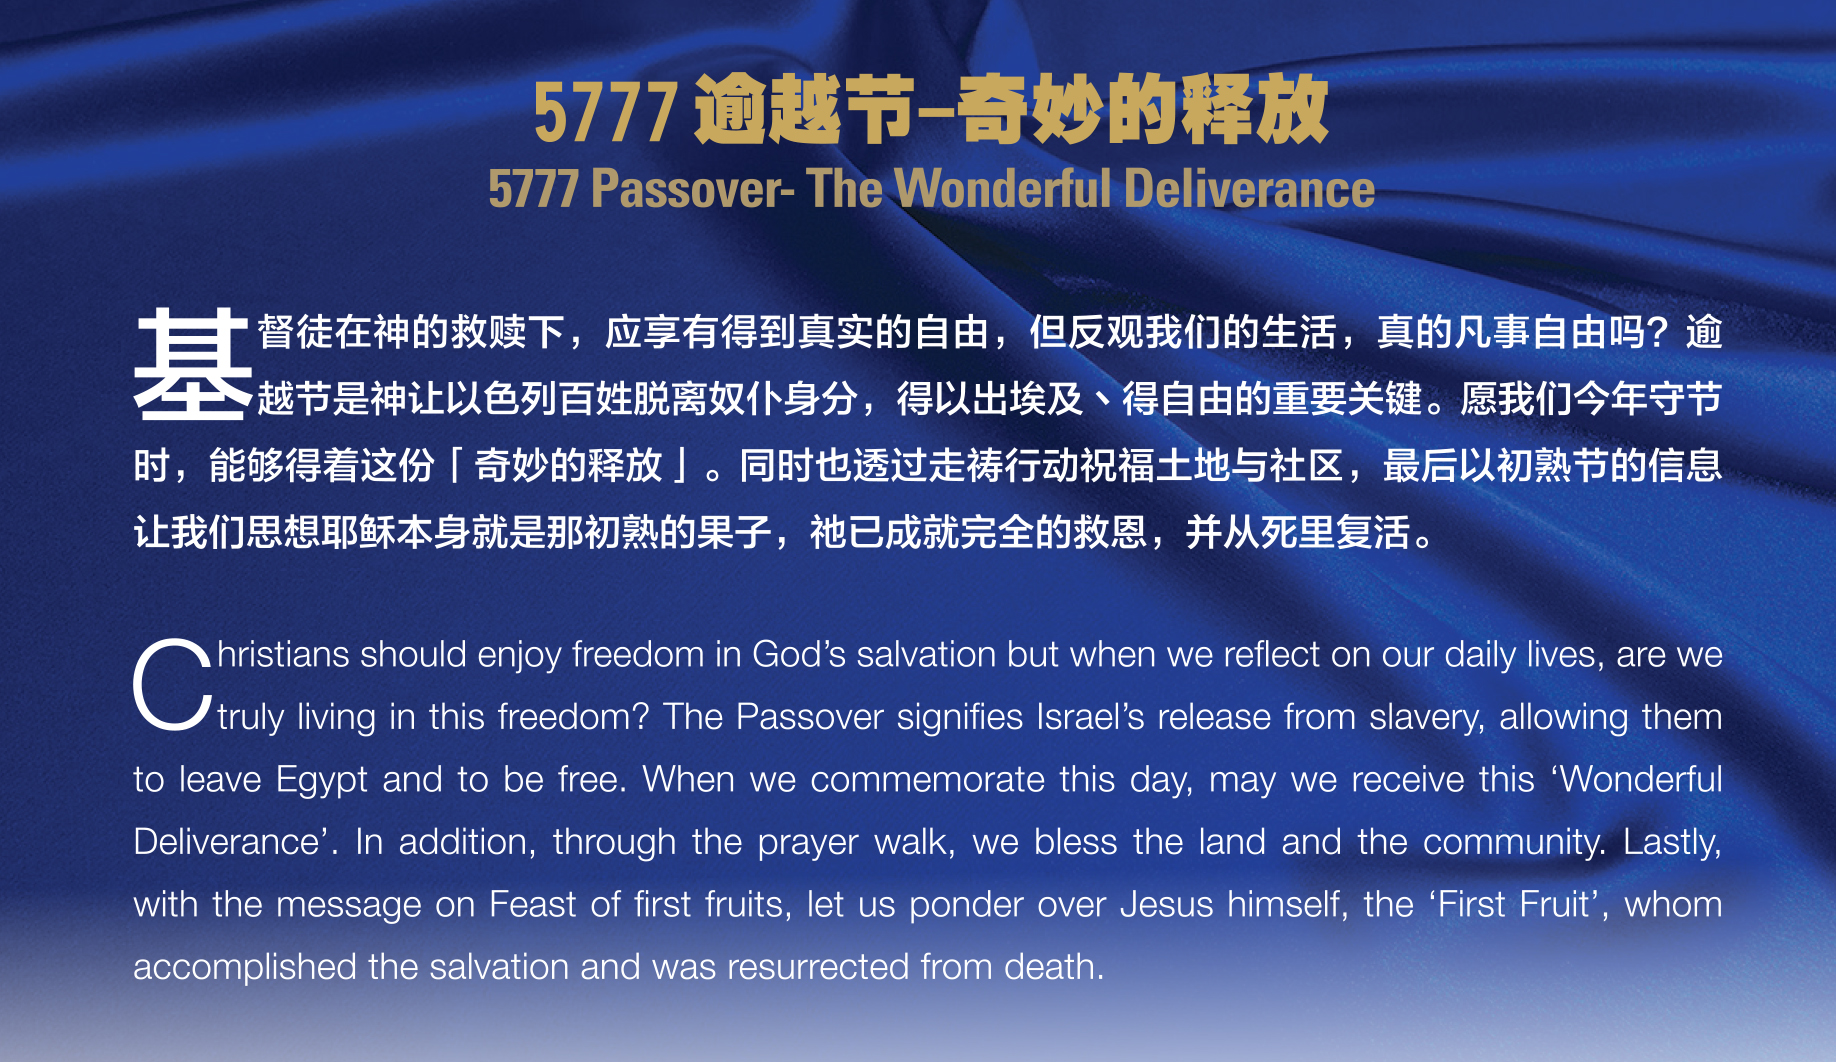 5777 Passover in